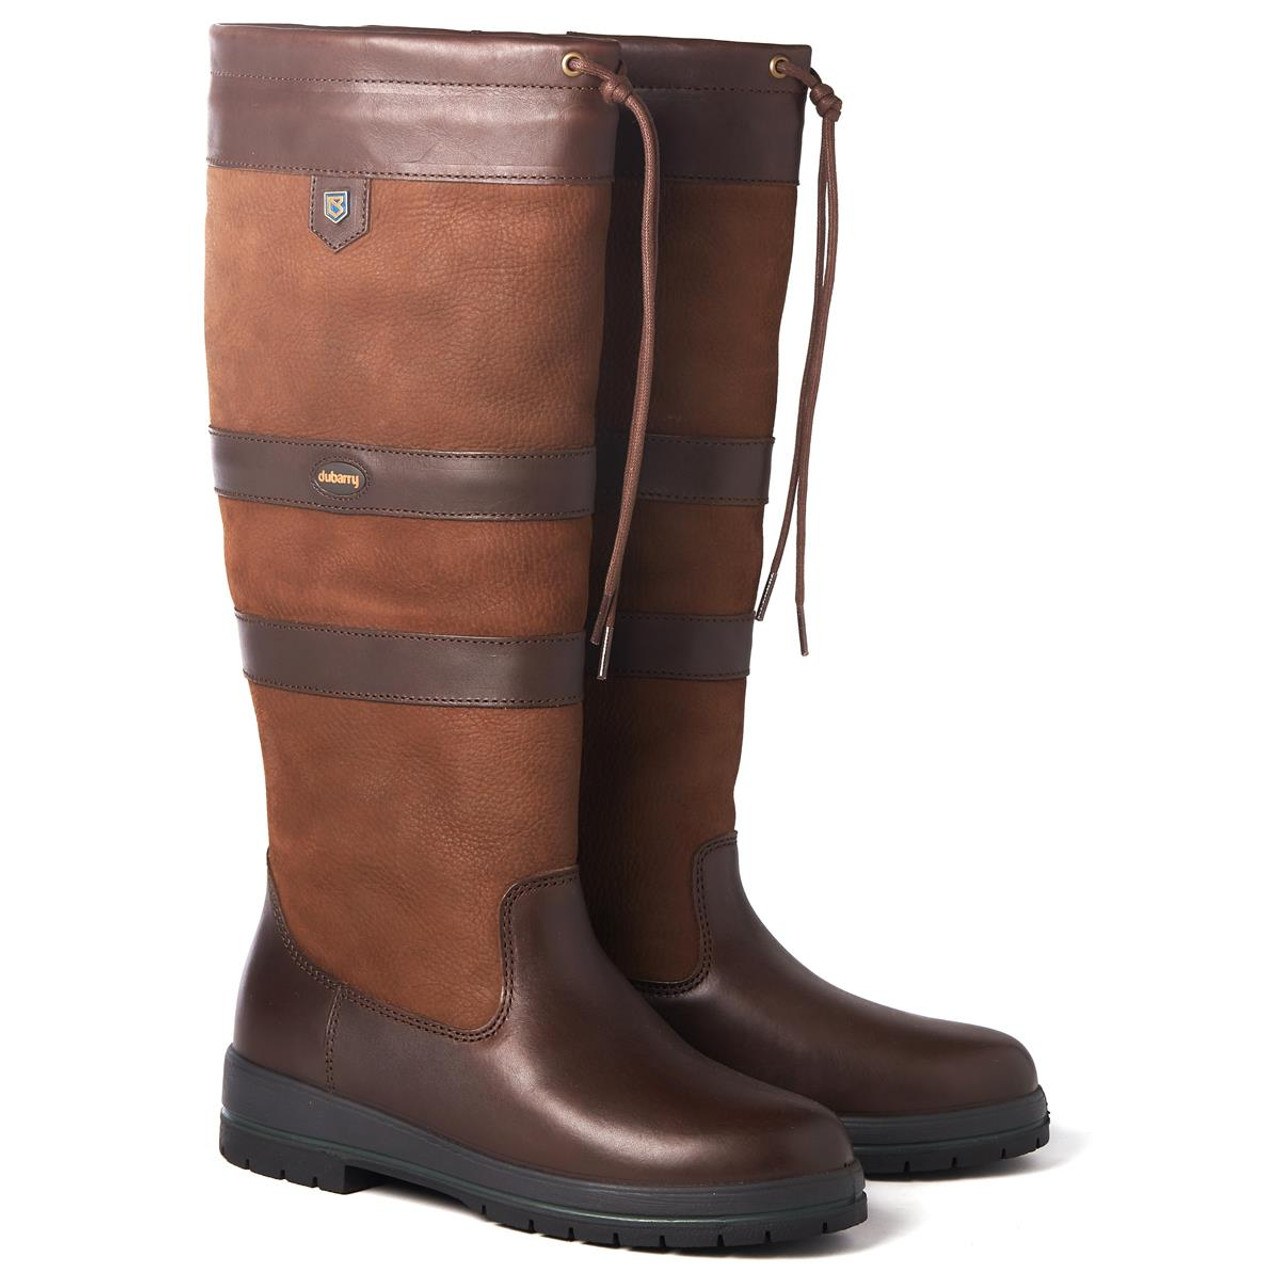 Walnut Galway ExtraFit Boots